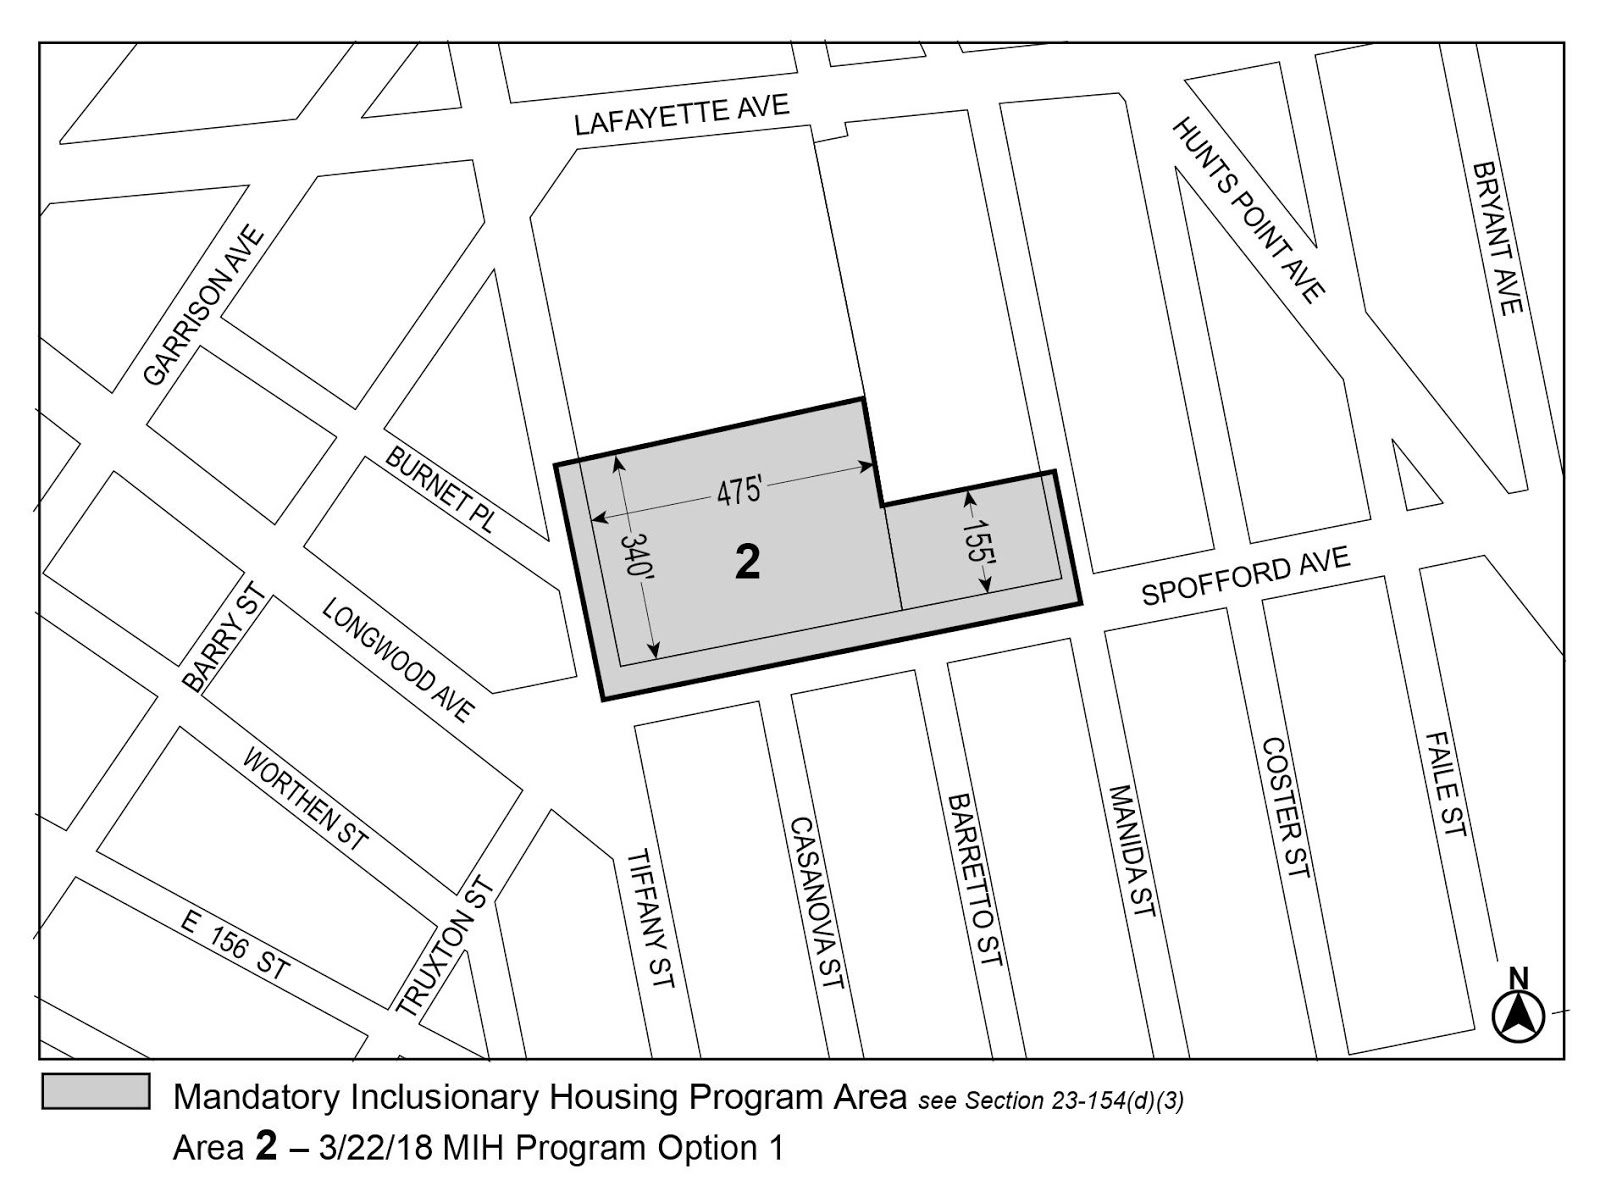 Zoning Resolutions F-Inclusionary Housing Designated Areas and Mandatory Inclusionary Housing Areas_2.14